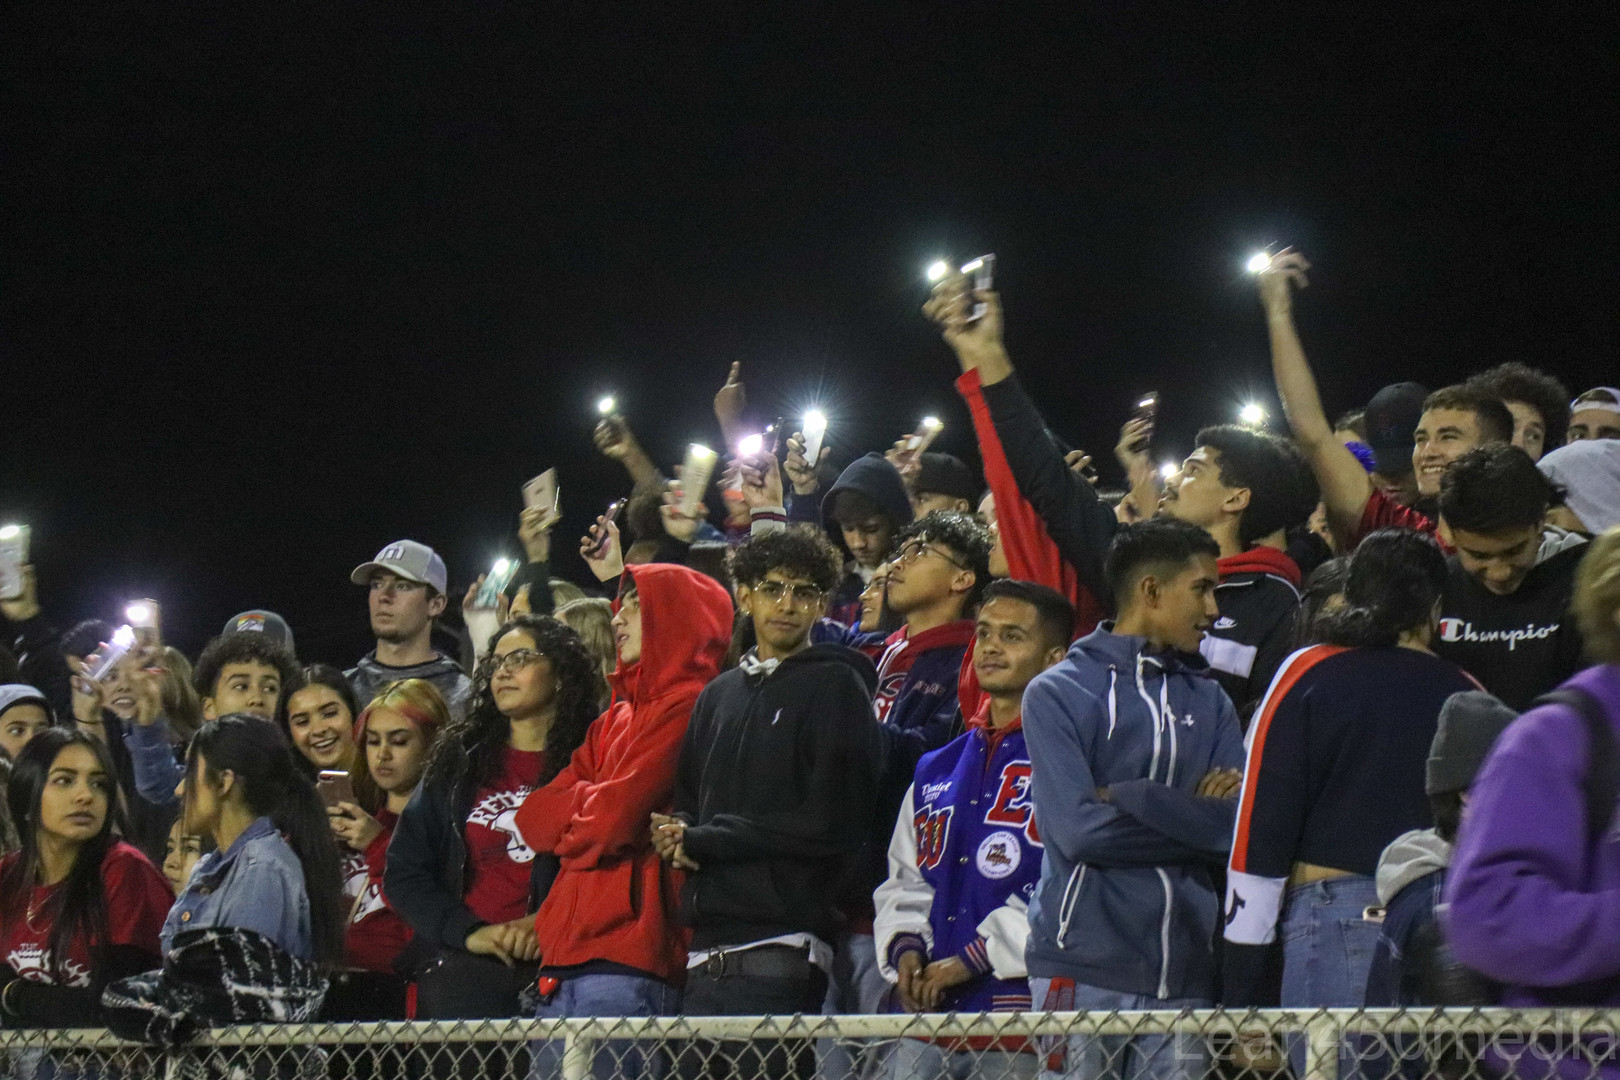 EU Vs. Manteca [Red Sea]-48.JPG